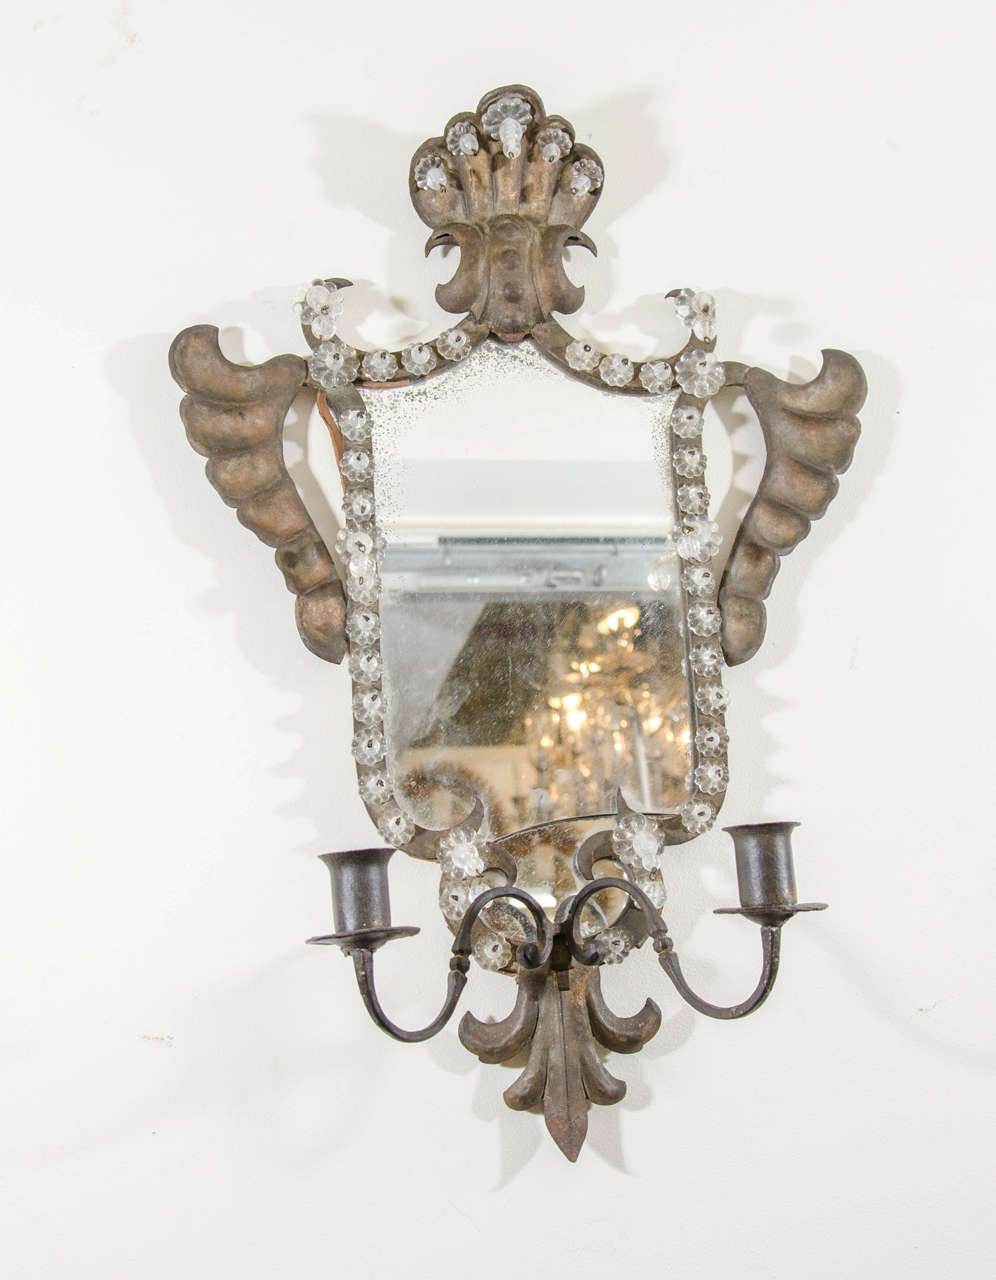 Antique Pair of Venetian Mirrored Wall Sconces in Hand-Wrought Iron For Sale at 1stdibs